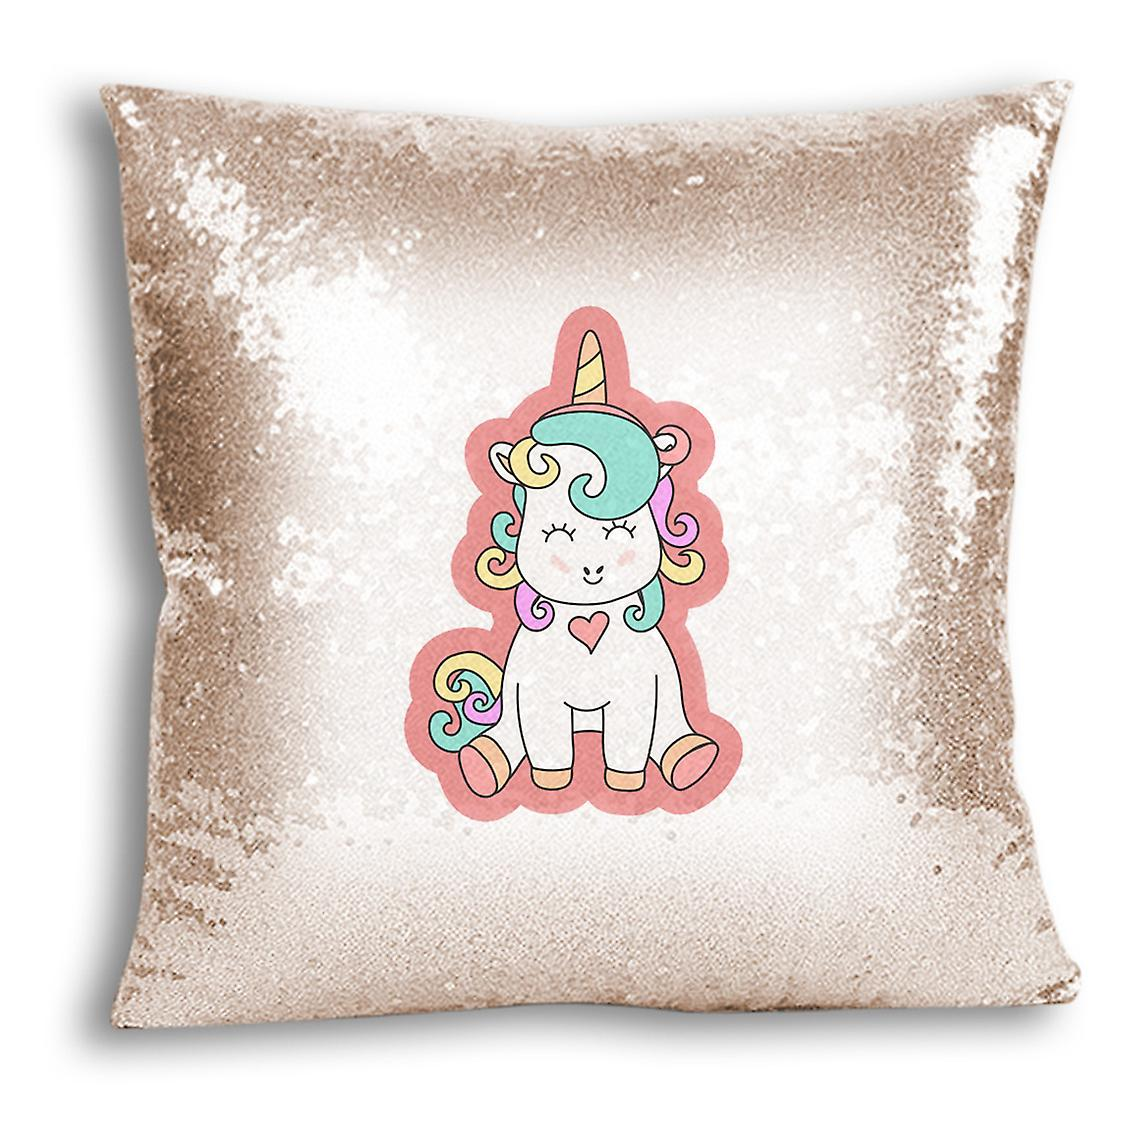 CushionPillow Champagne Decor 19 Printed Home I Cover For Sequin Design tronixsUnicorn 08nOkwP